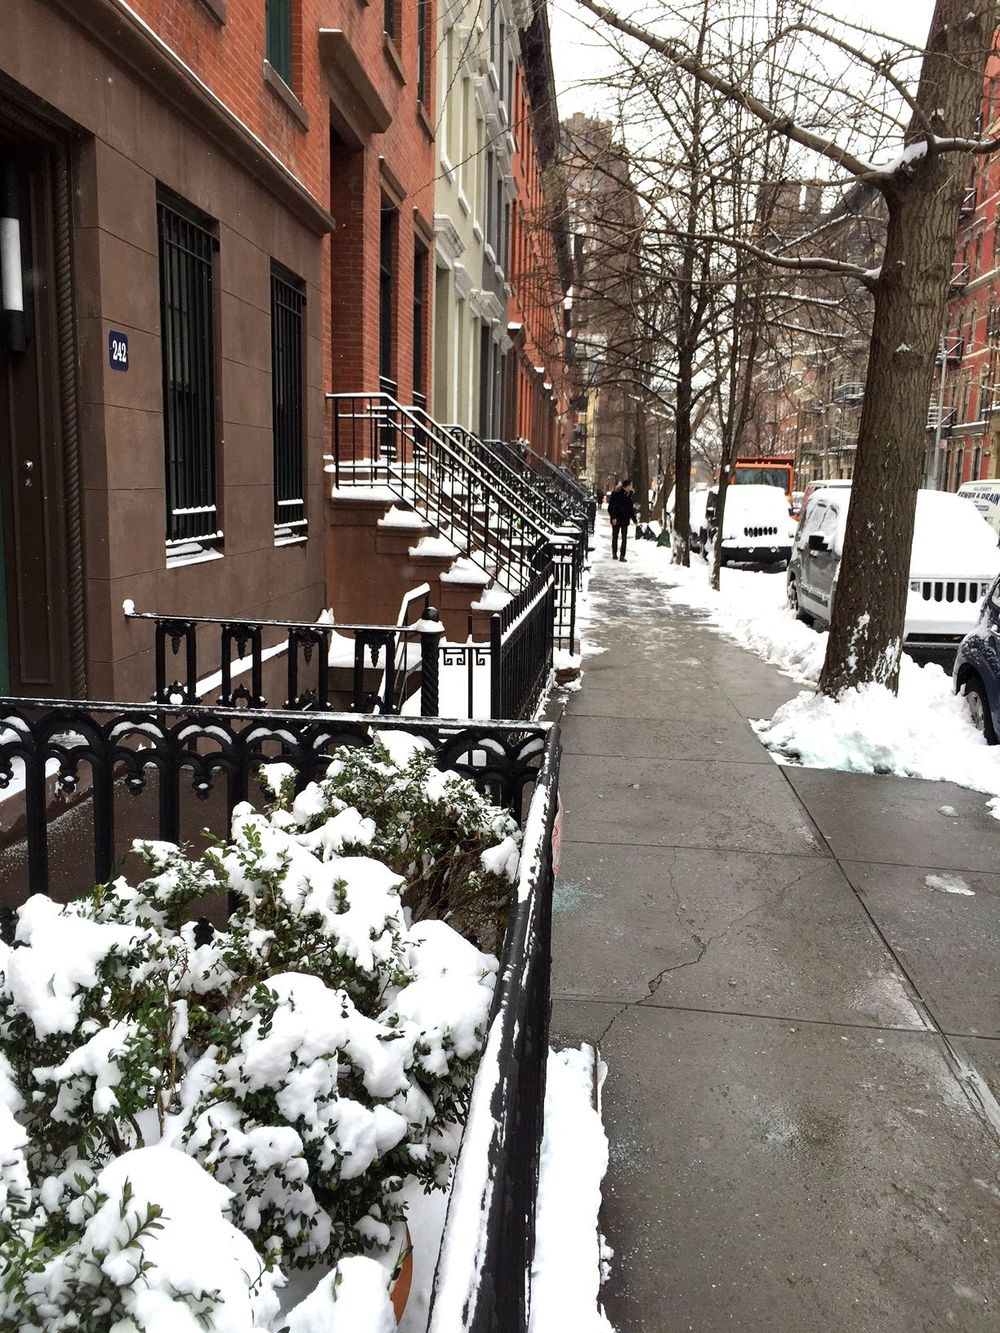 The West Village on January 27, 2015, the morning after NYC's 'biggest blizzard ever'.